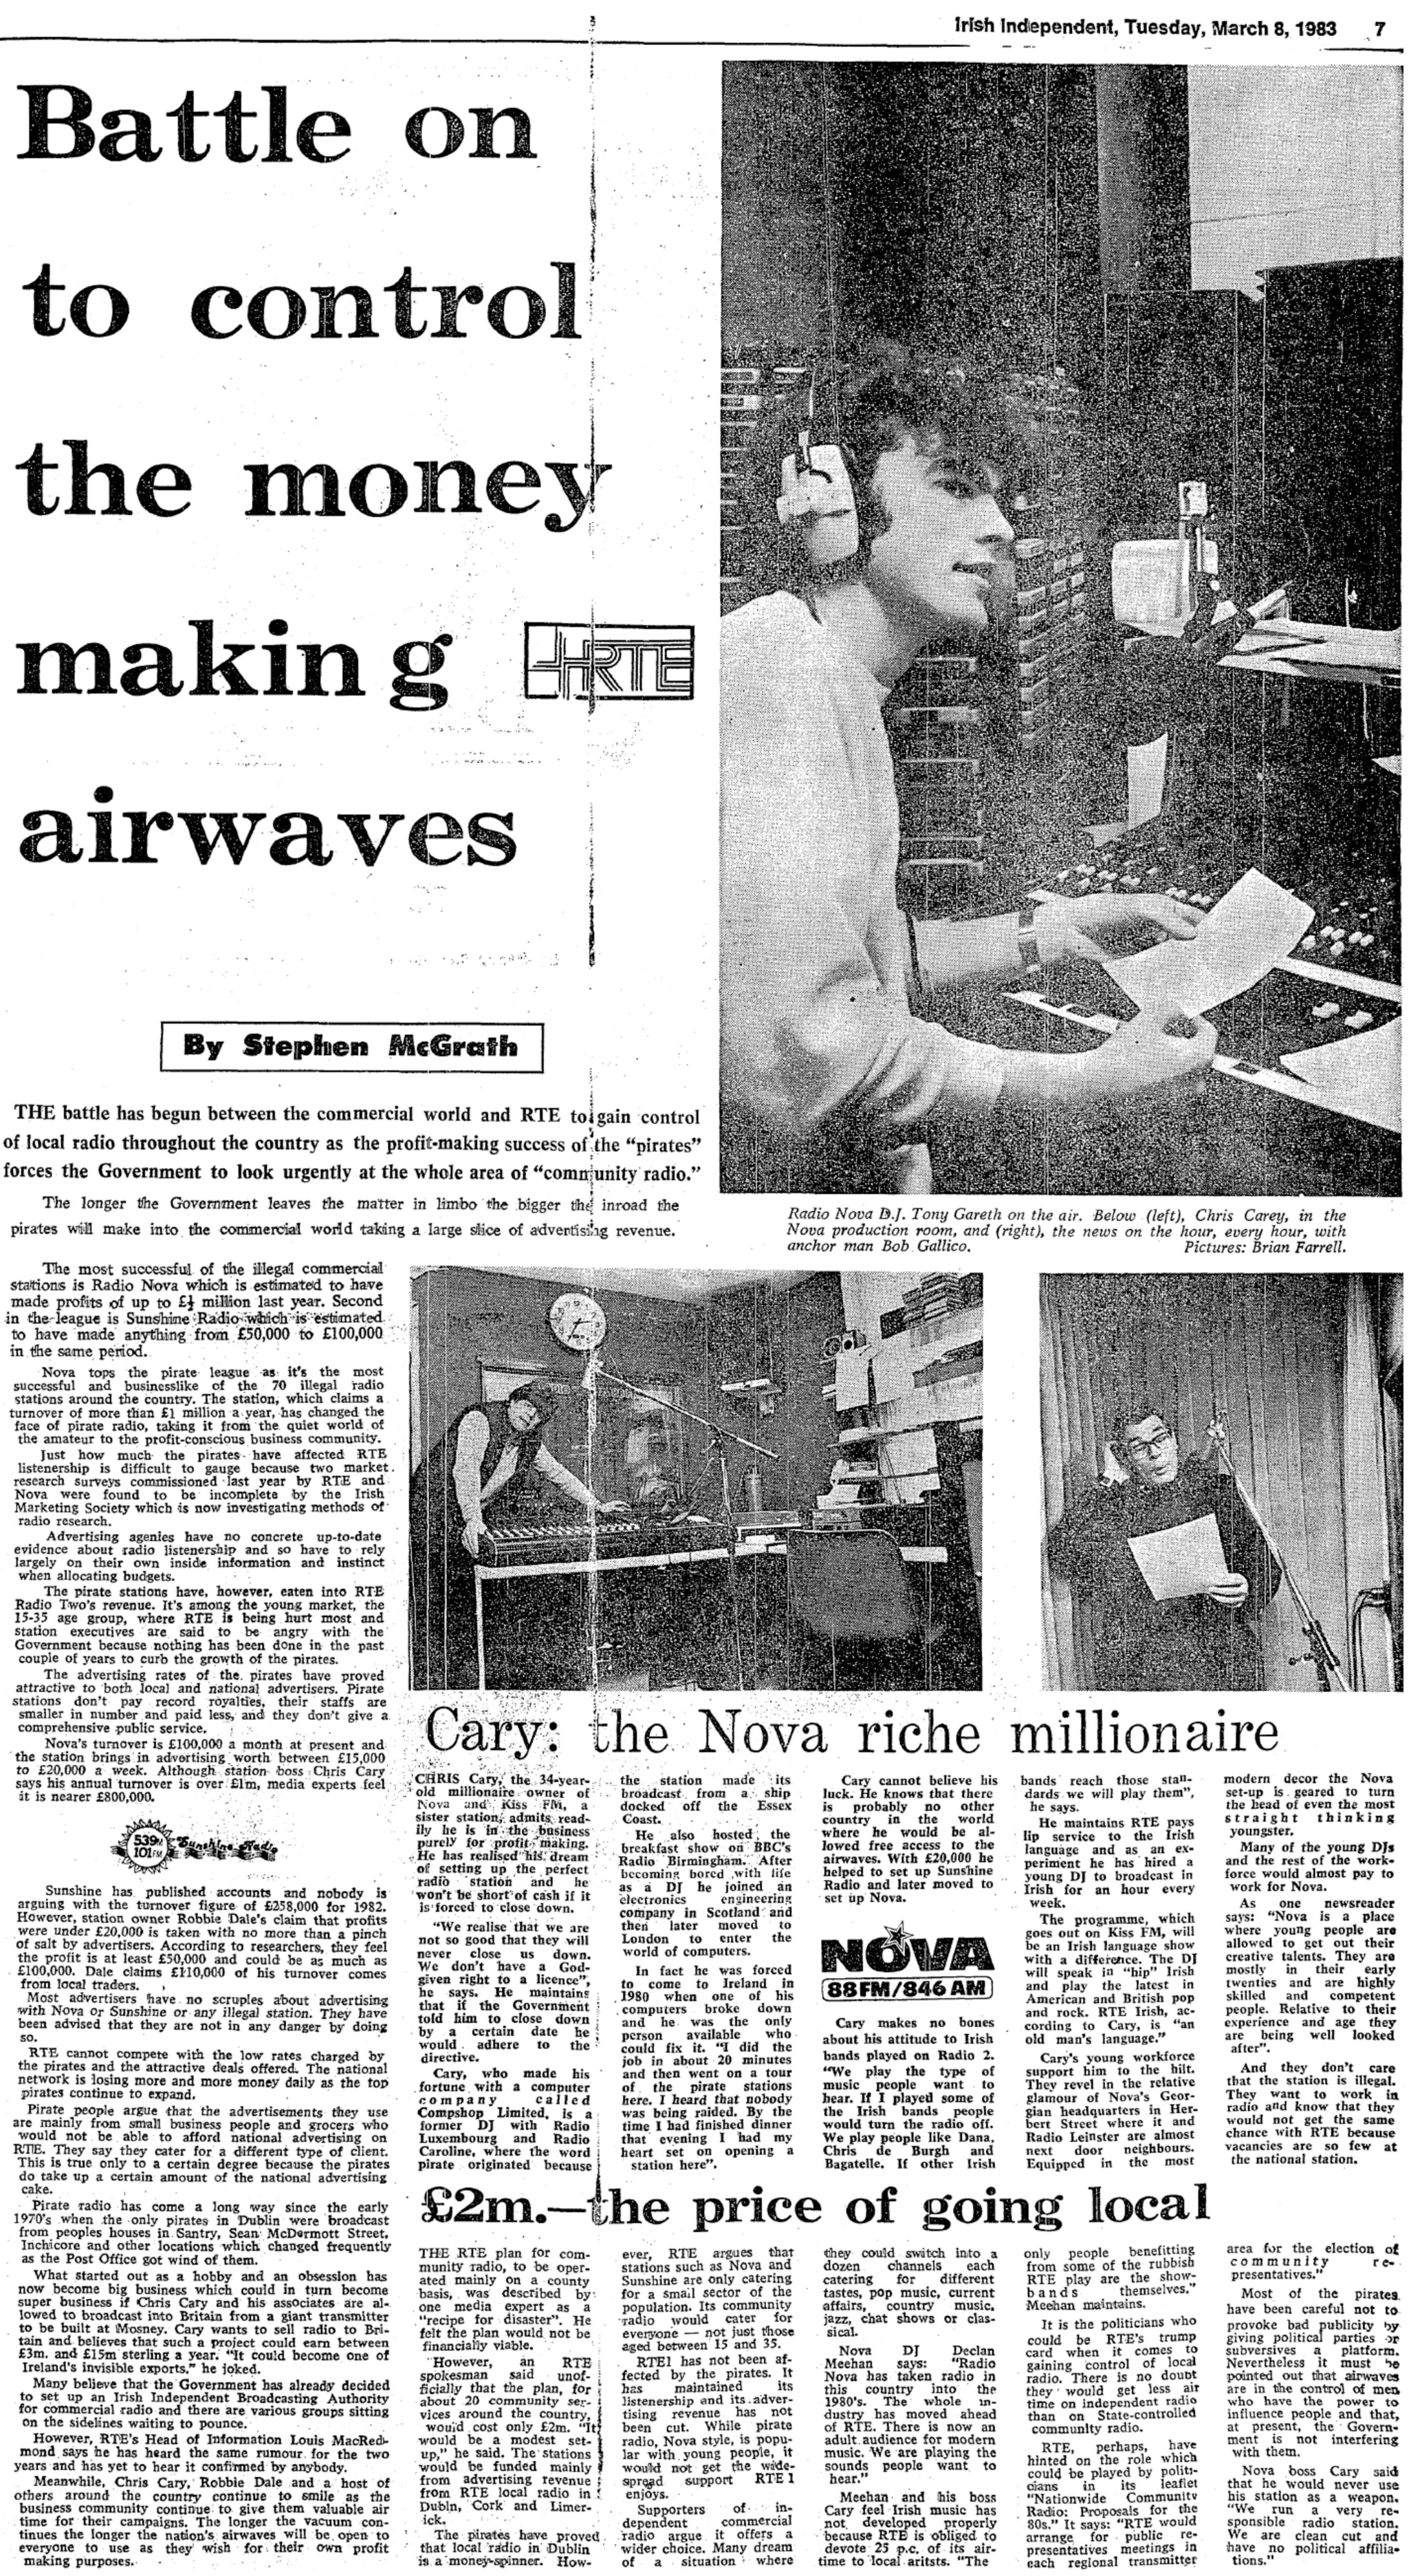 Battle on to control the money making airwaves was a newspaper headline from the Irish Independent dated March 8th 1983